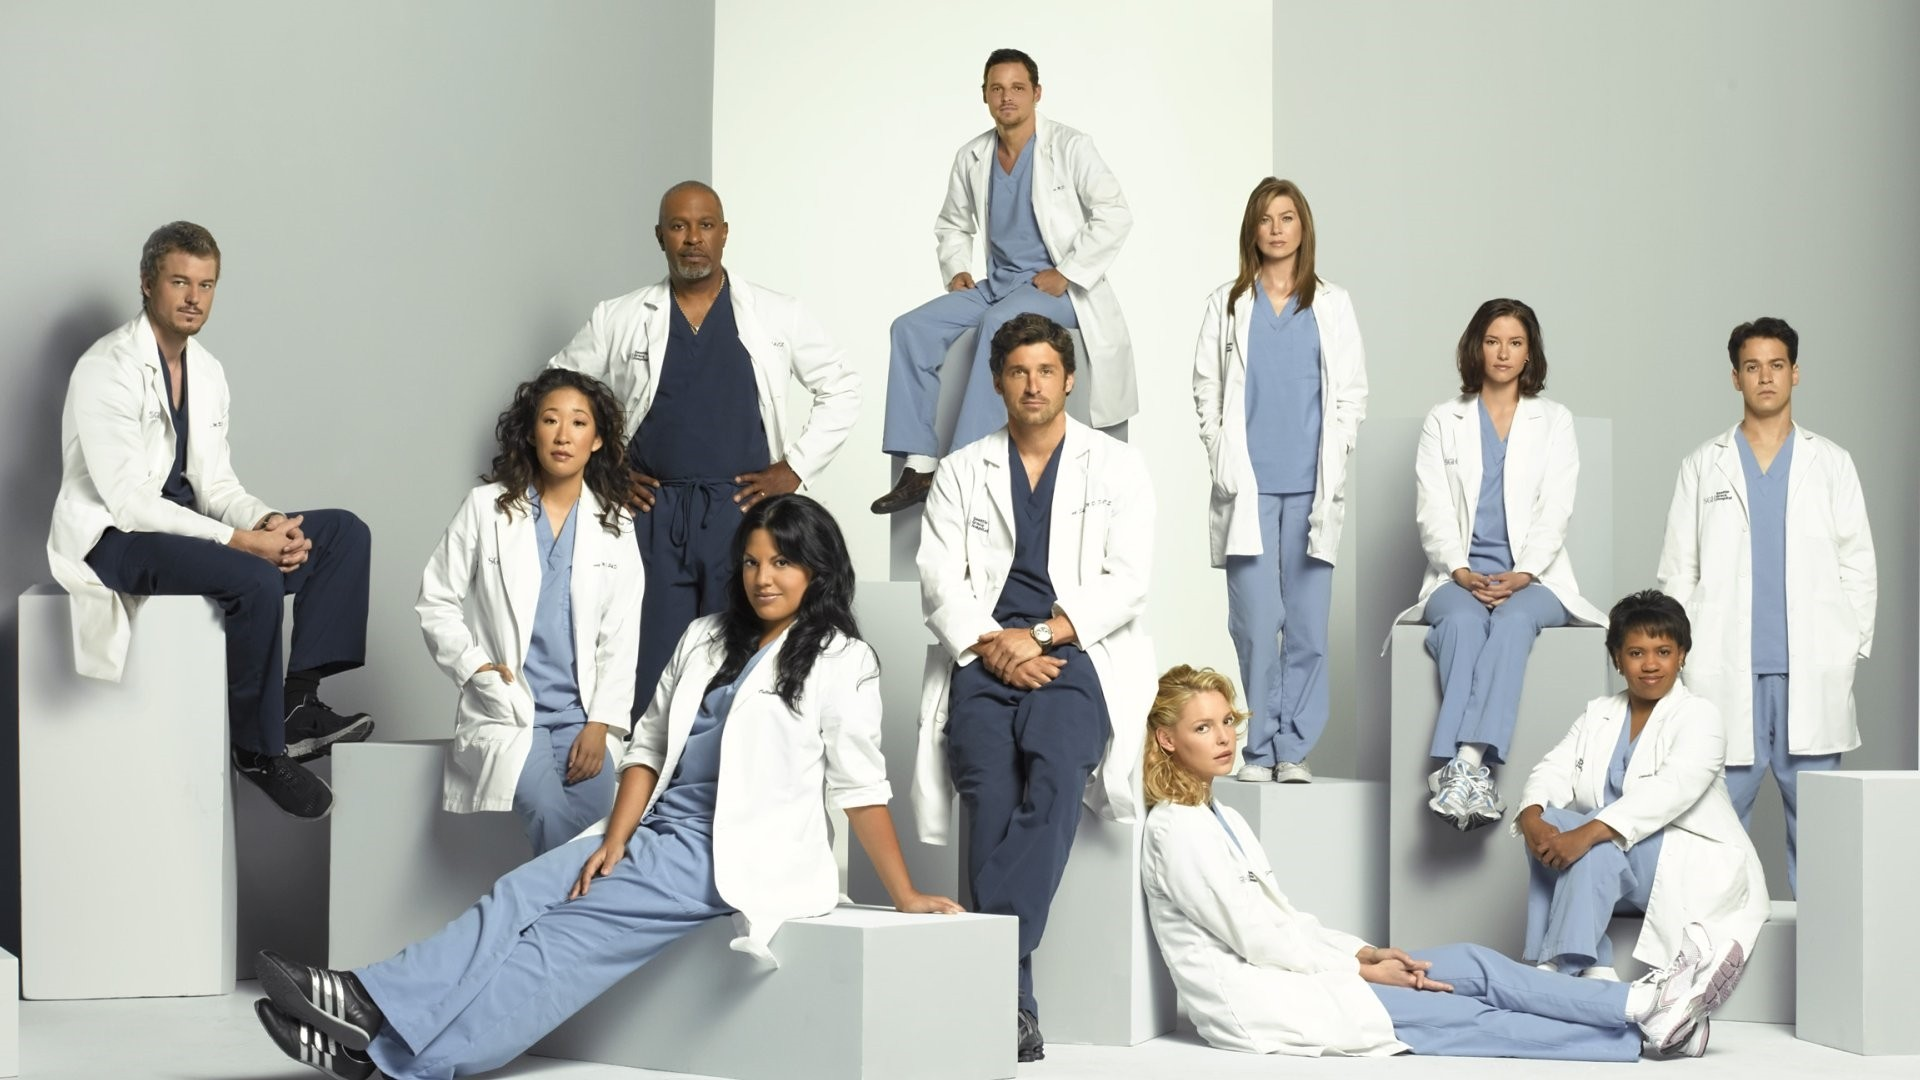 Grey's Anatomy Wallpaper Picture hd